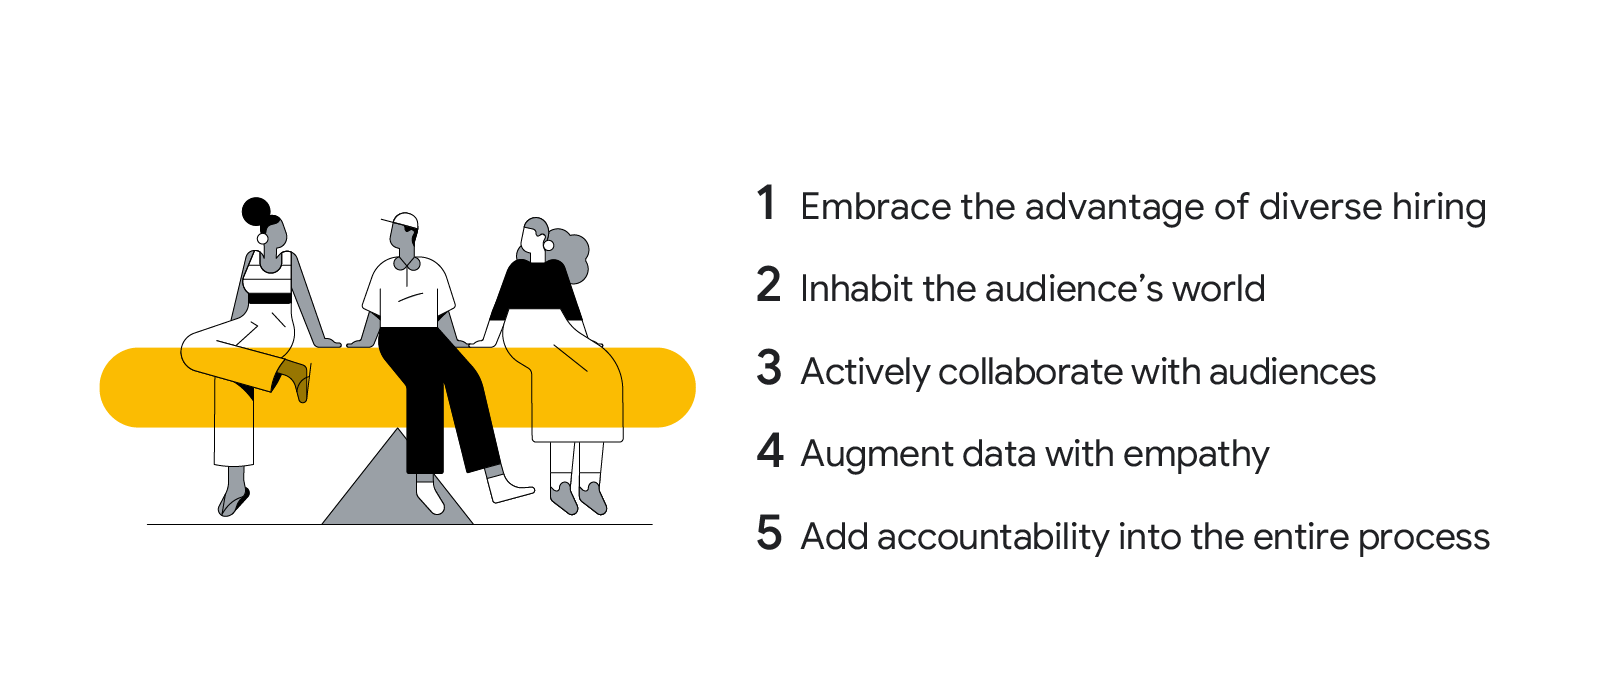 3 people sit on a yellow bar balancing on a triangle. Text reads: 1. View diverse hiring as an advantage. 2. Inhabit the audience's world. 3. Actively collaborate with audiences. 4. Augment data with empathy. 5. Add accountability into the entire process.